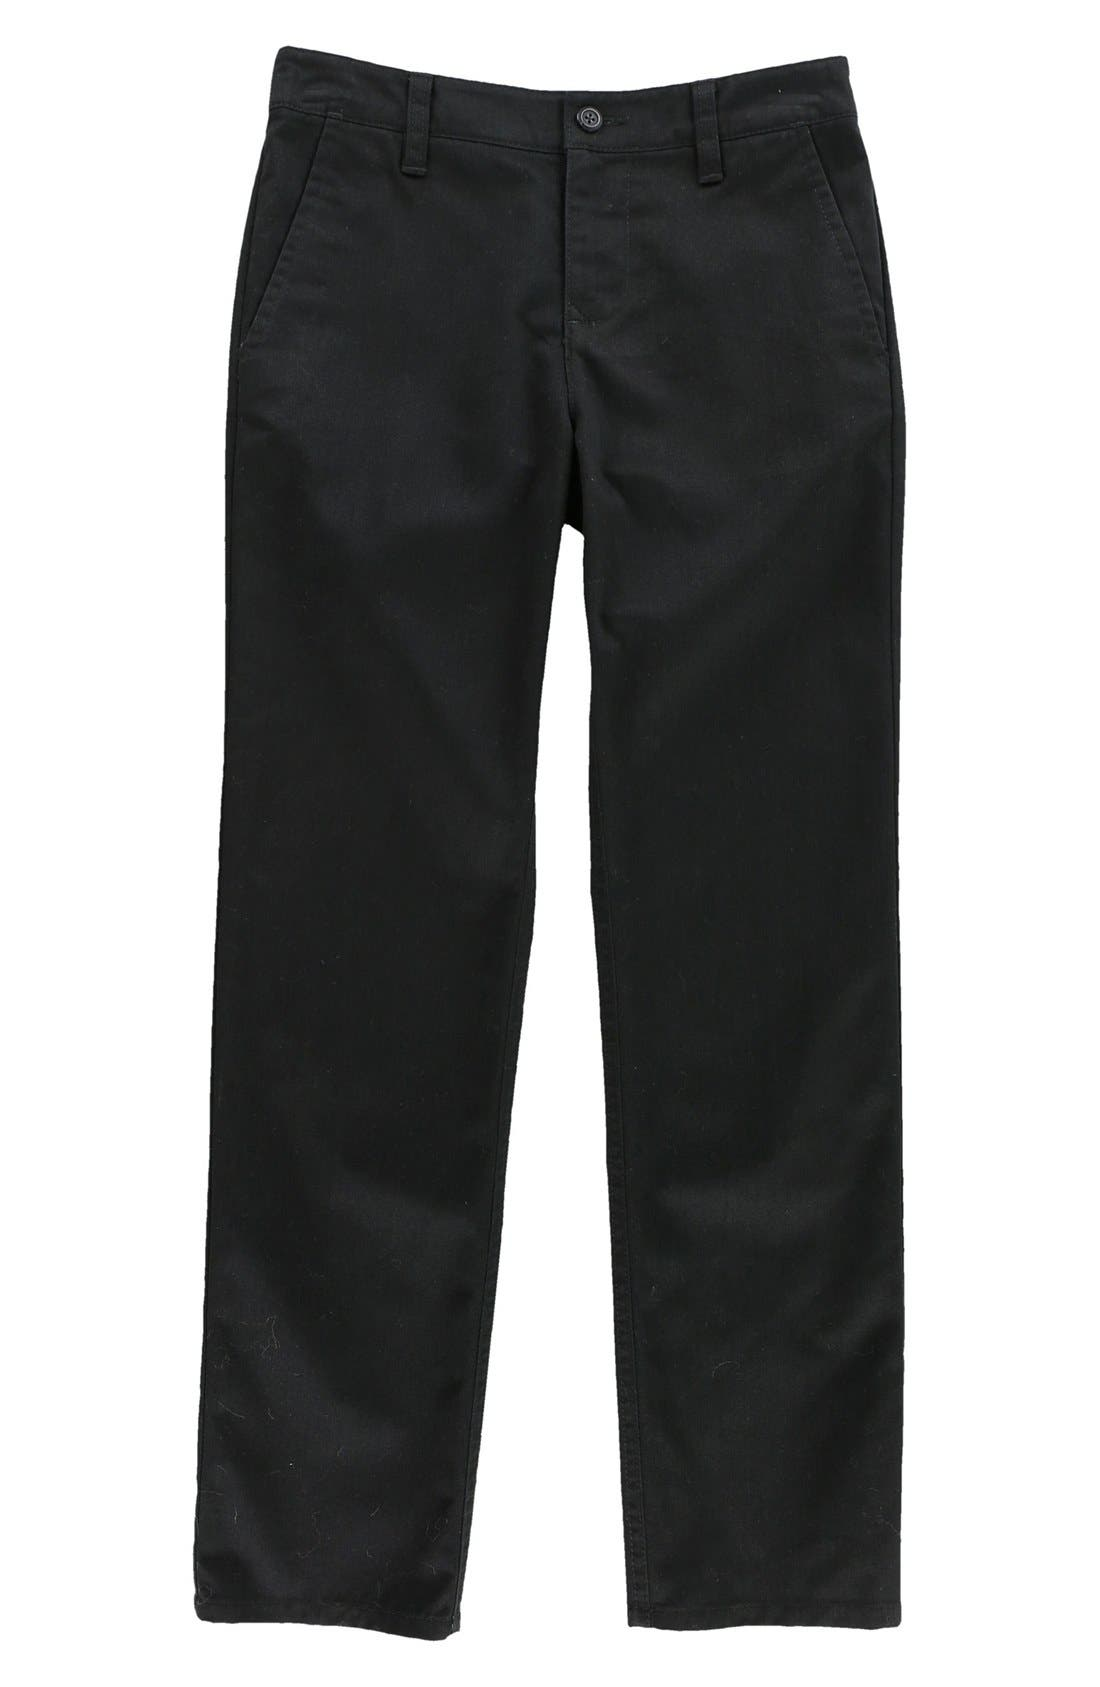 Contact Straight Leg Twill Pants,                         Main,                         color, 001